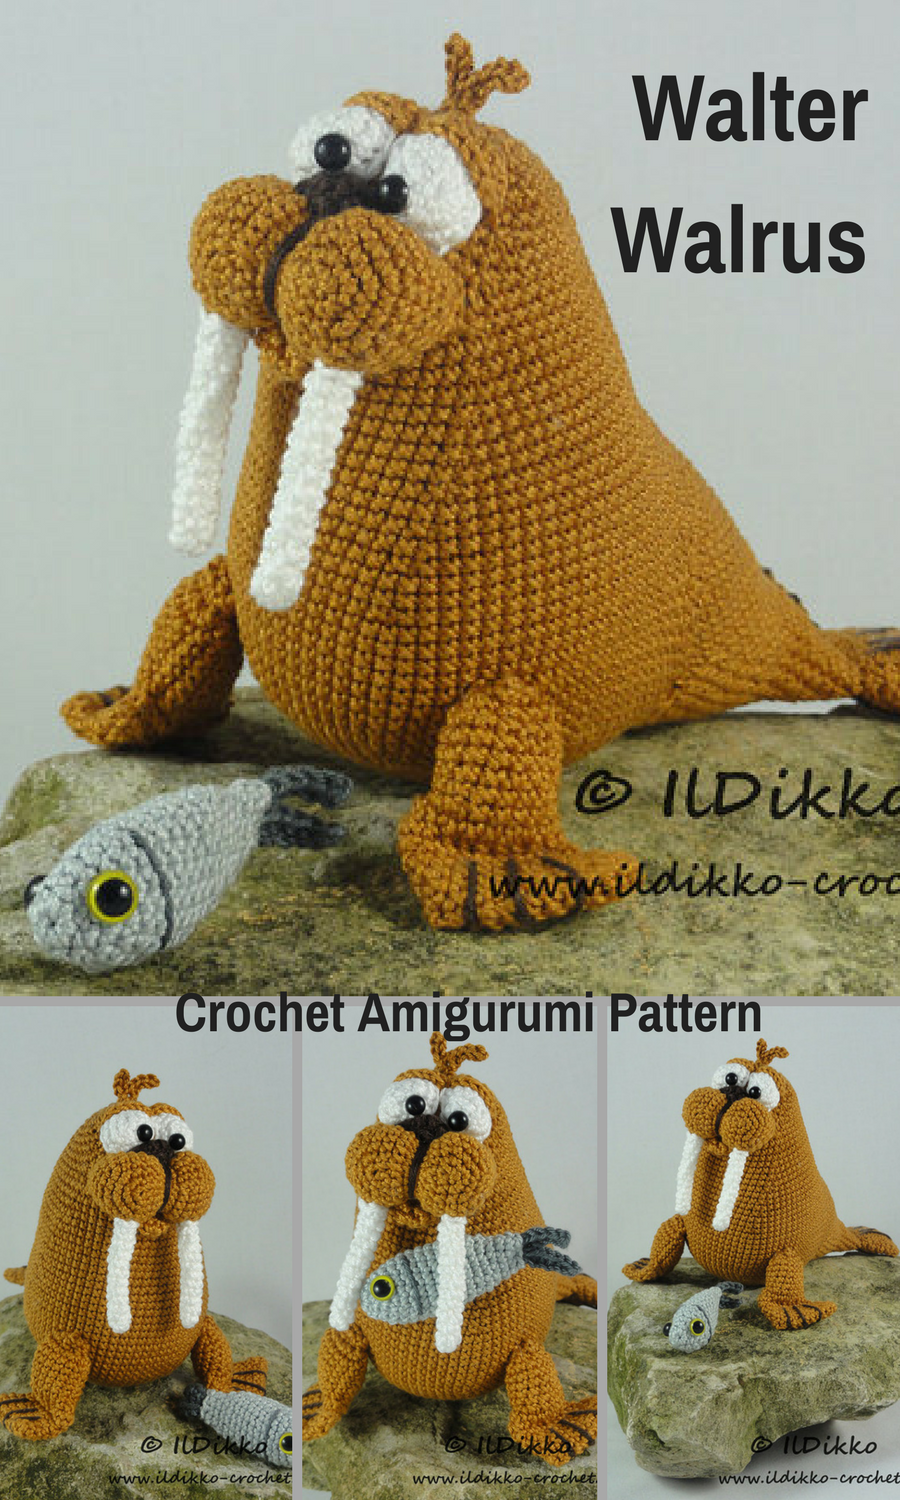 Walter The Walrus Is A Fun Crocheted Amigurumi Doll That Would Love